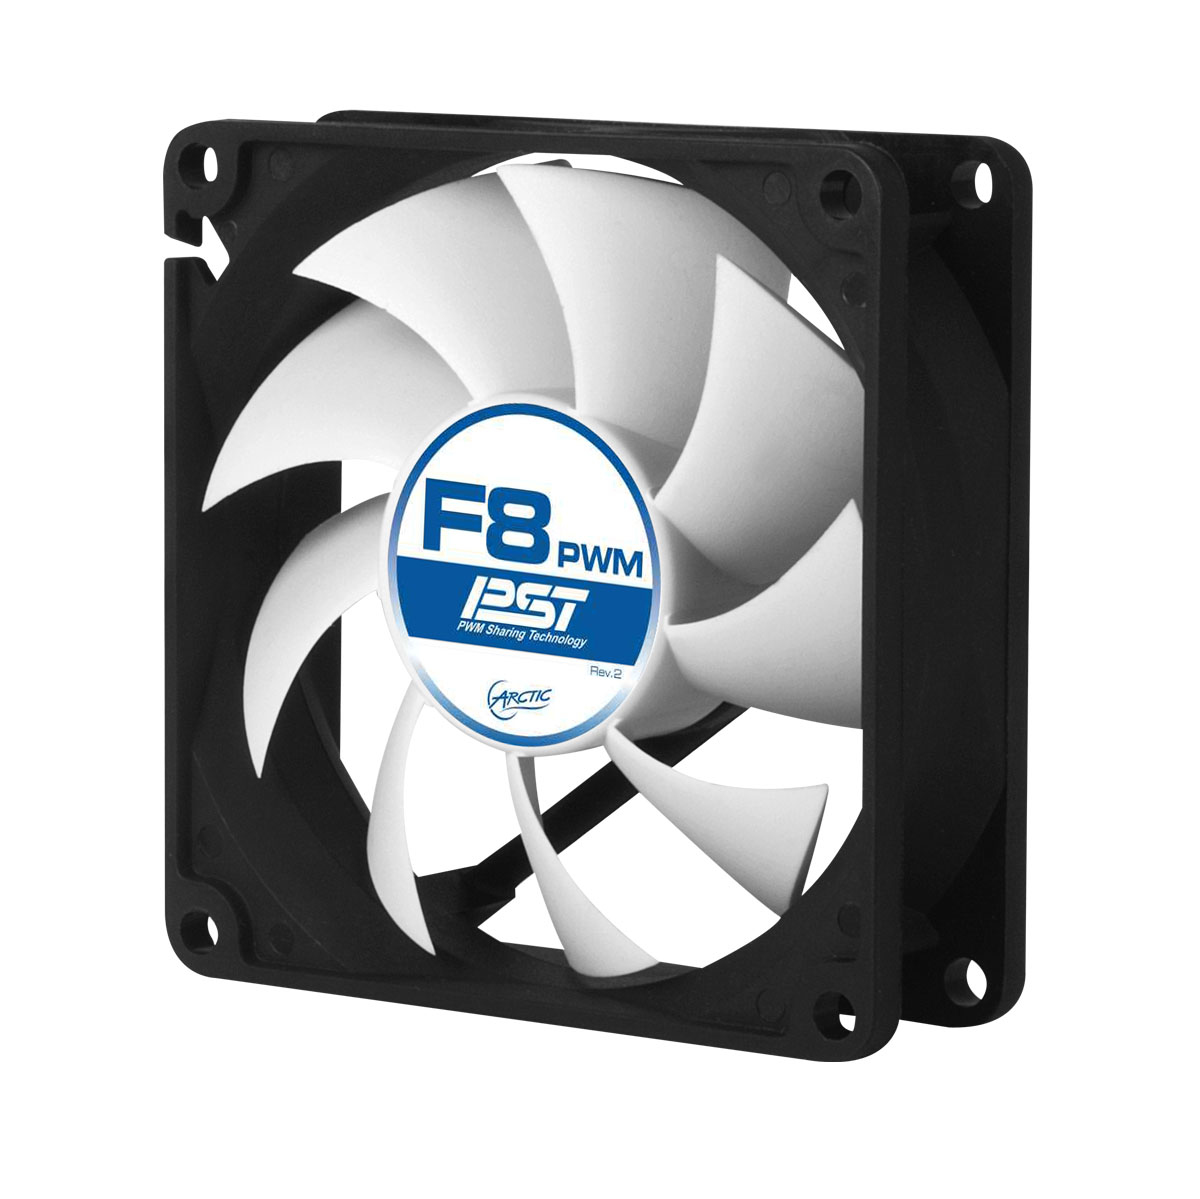 AFACO-080P0-GBA01 ARCTIC F8 PWM PST 4-Pin PWM fan with standard case - Ent01